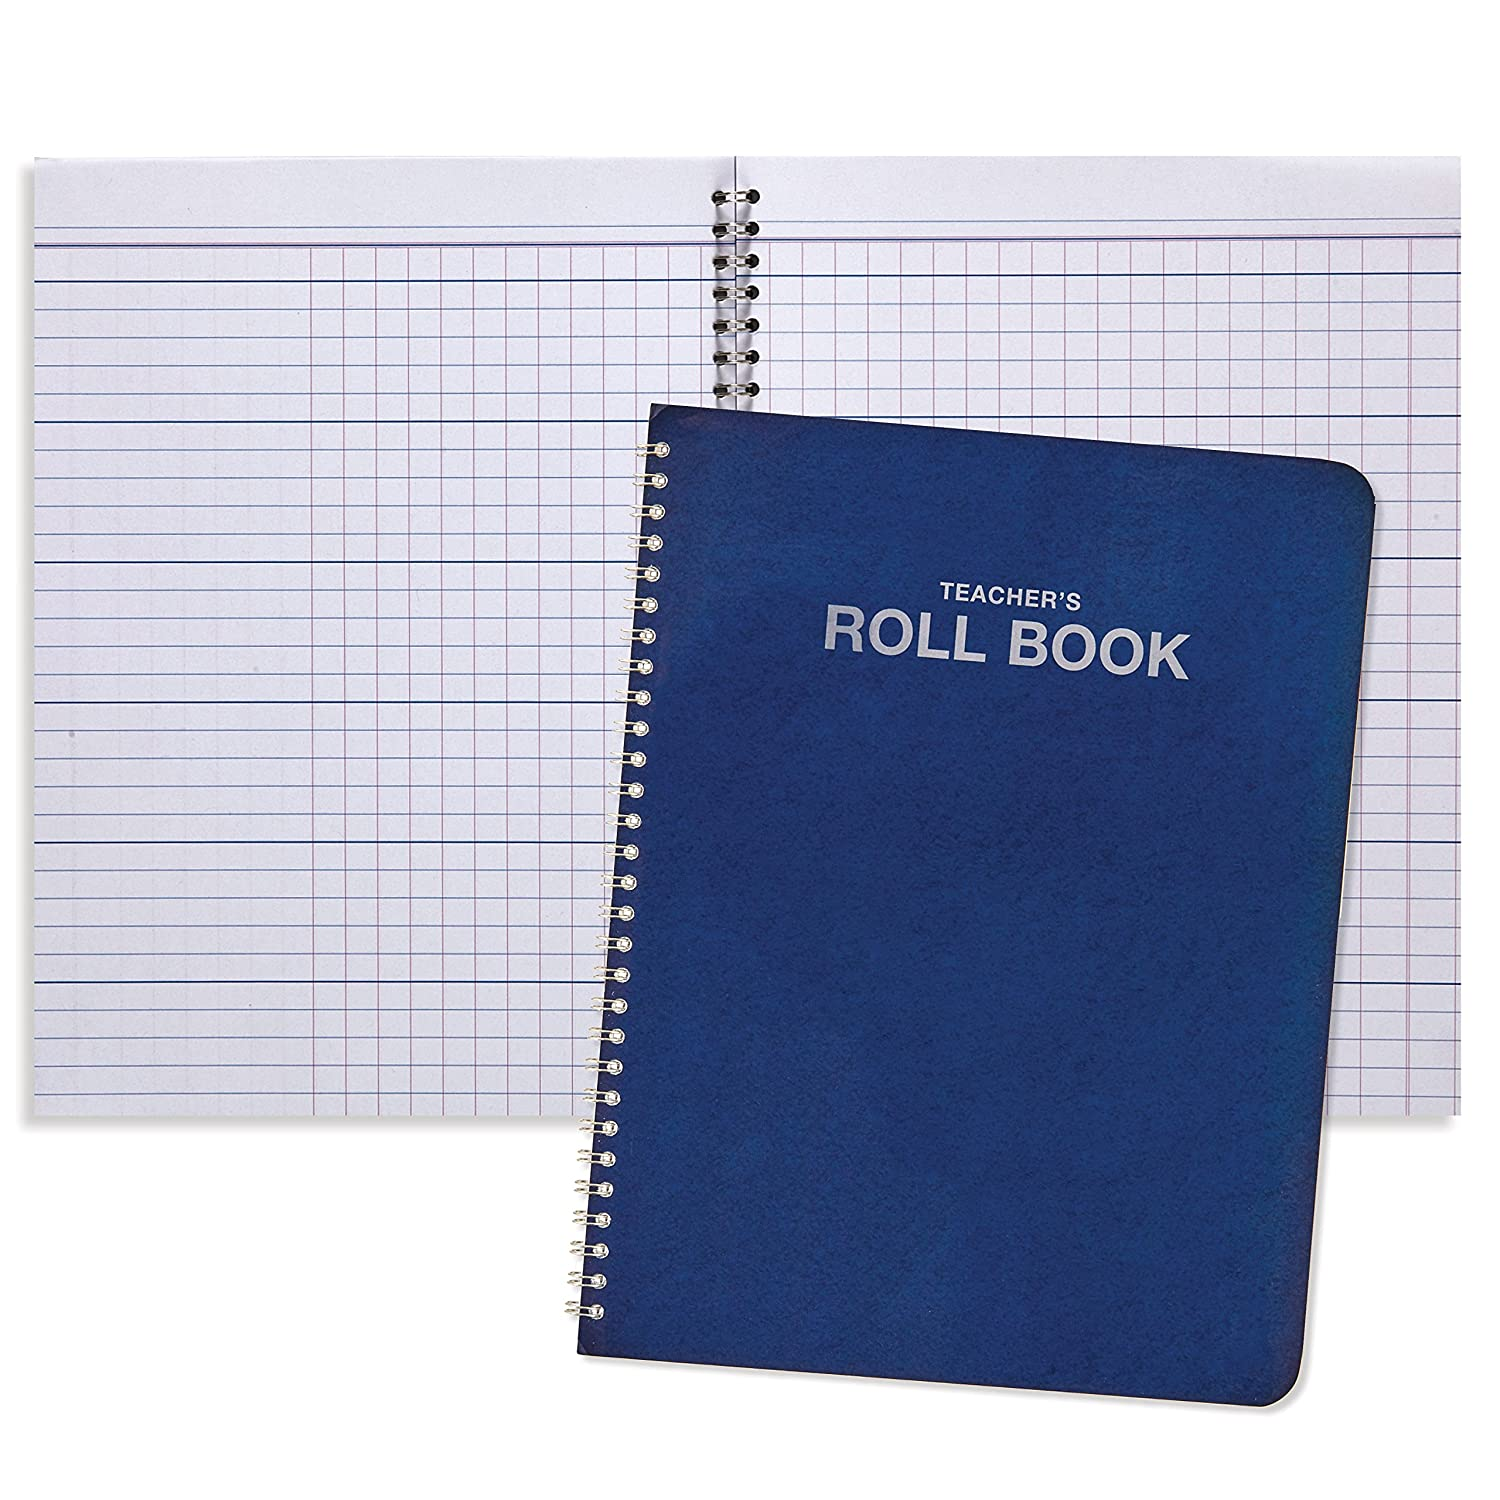 amazon com teacher s roll book student register school daily